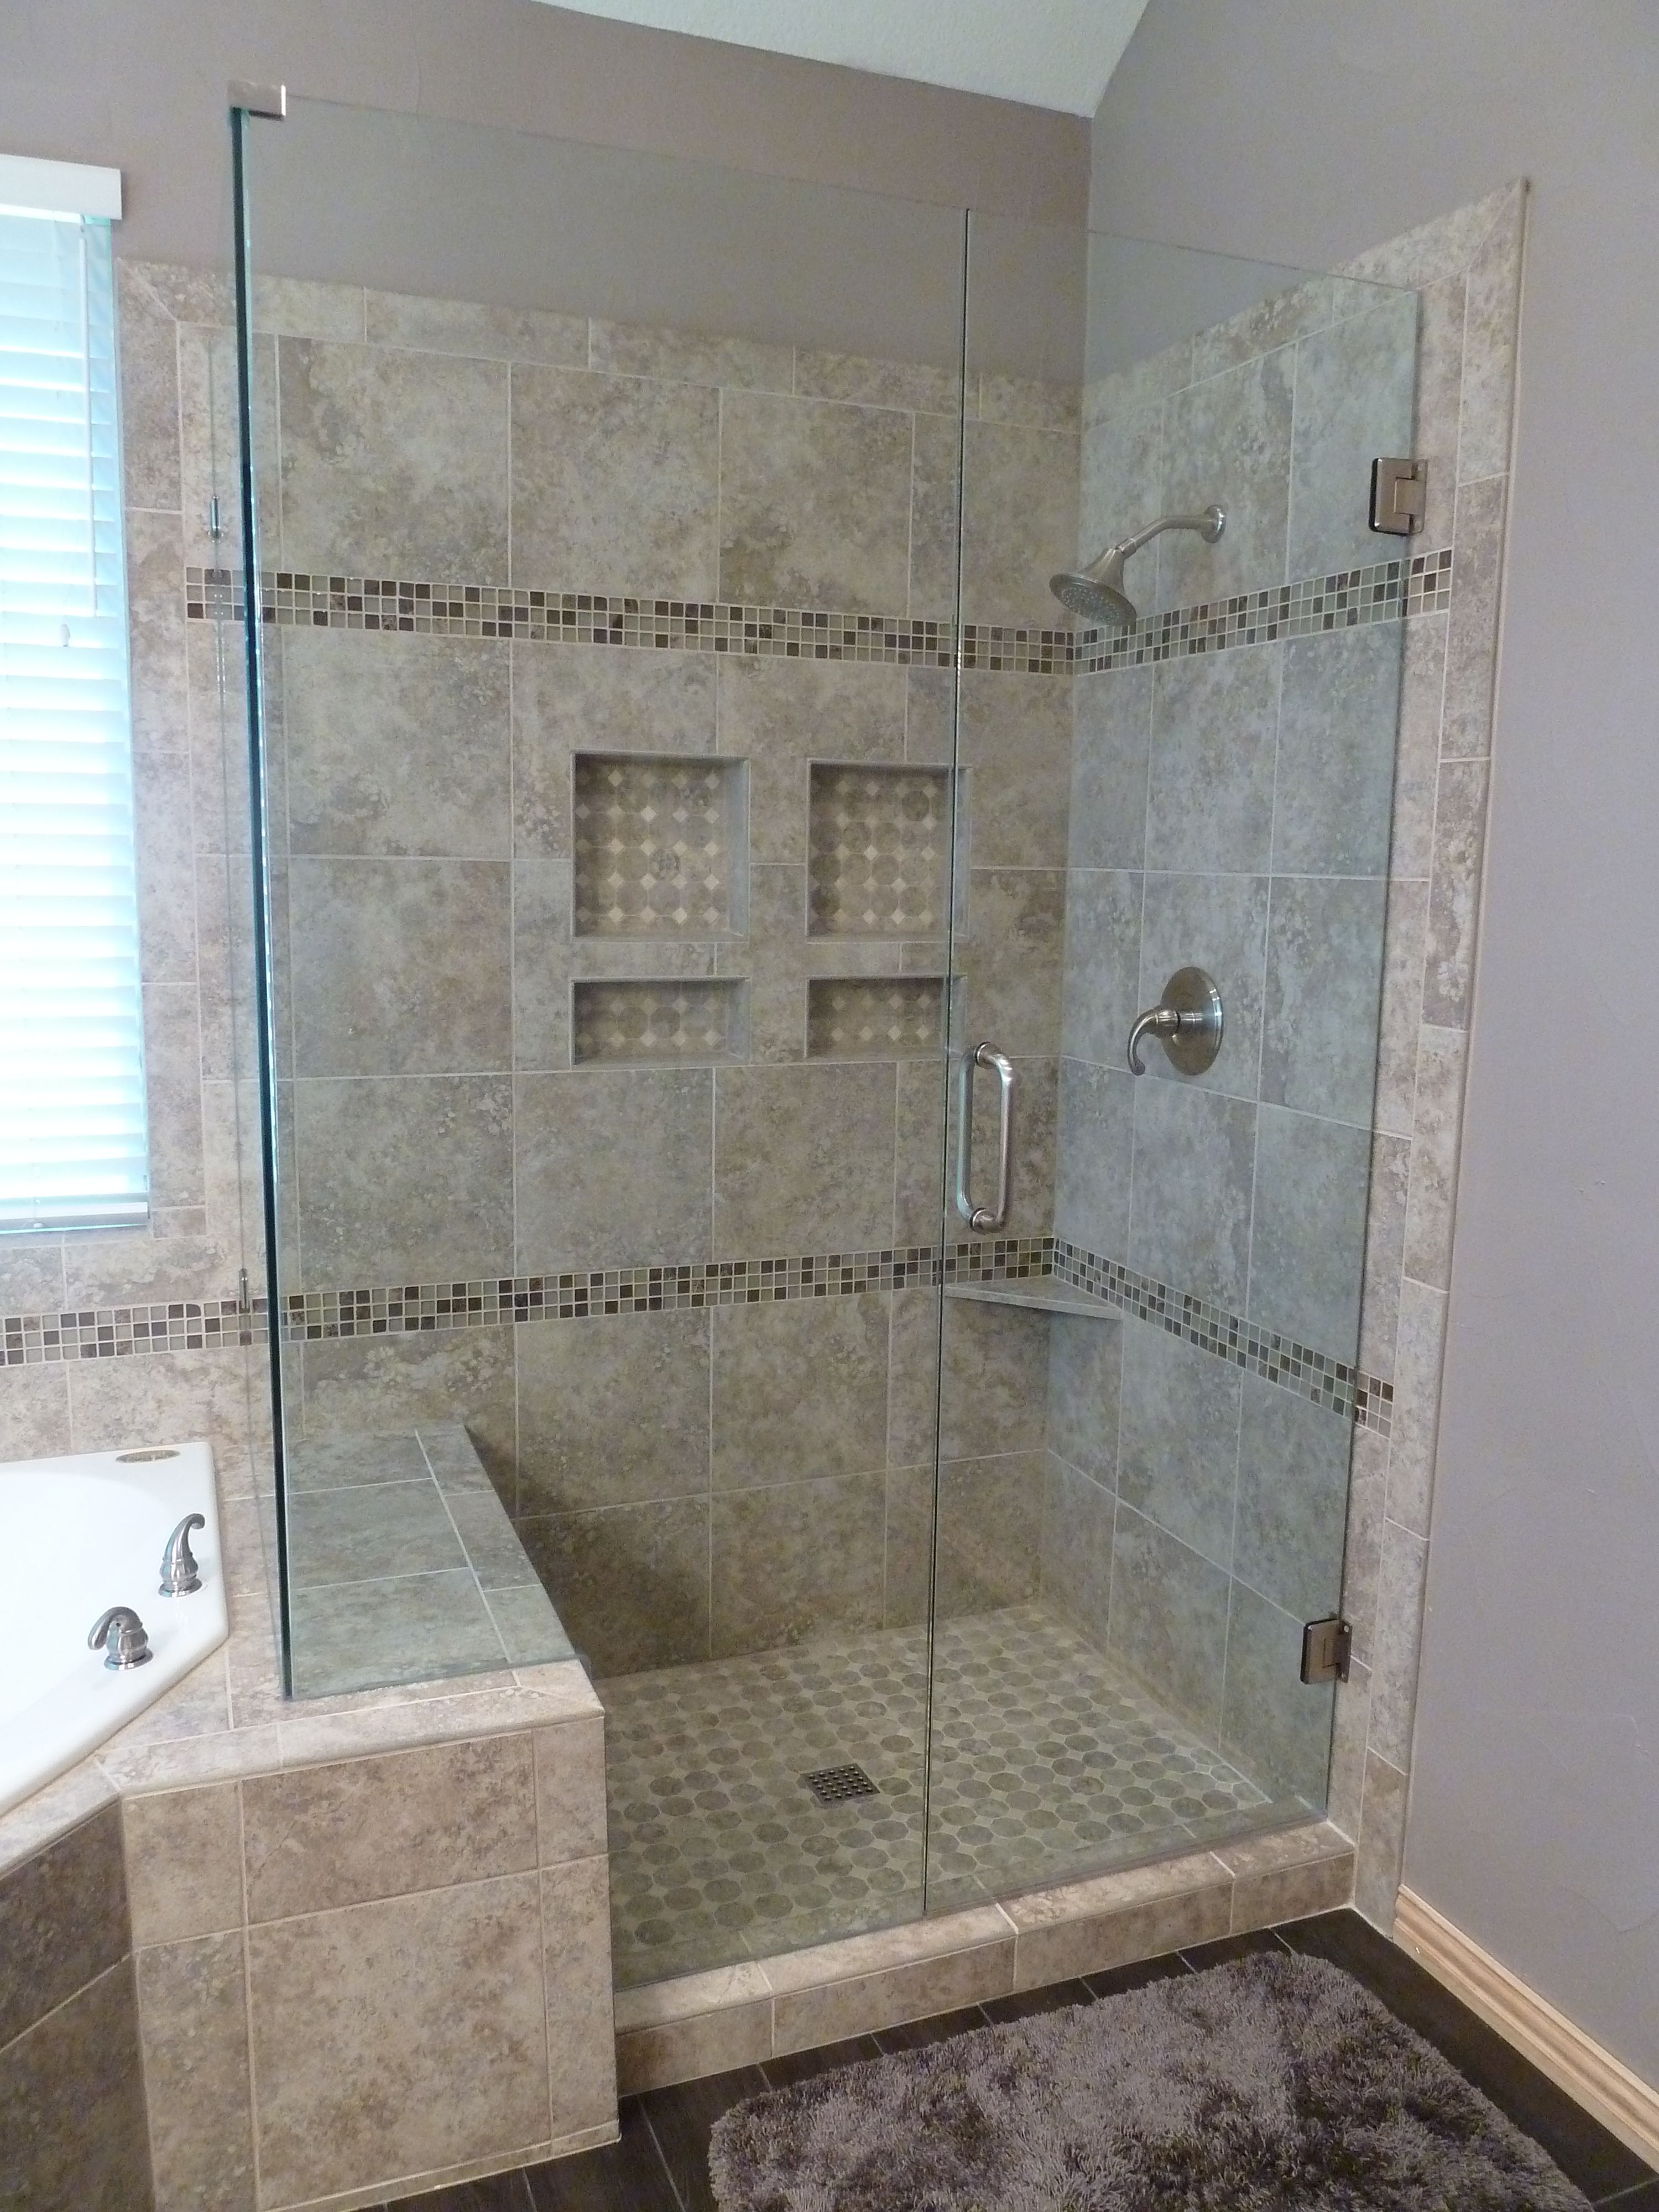 LOVE thislook a the gained space by going over to the tub side just a littleWe could do